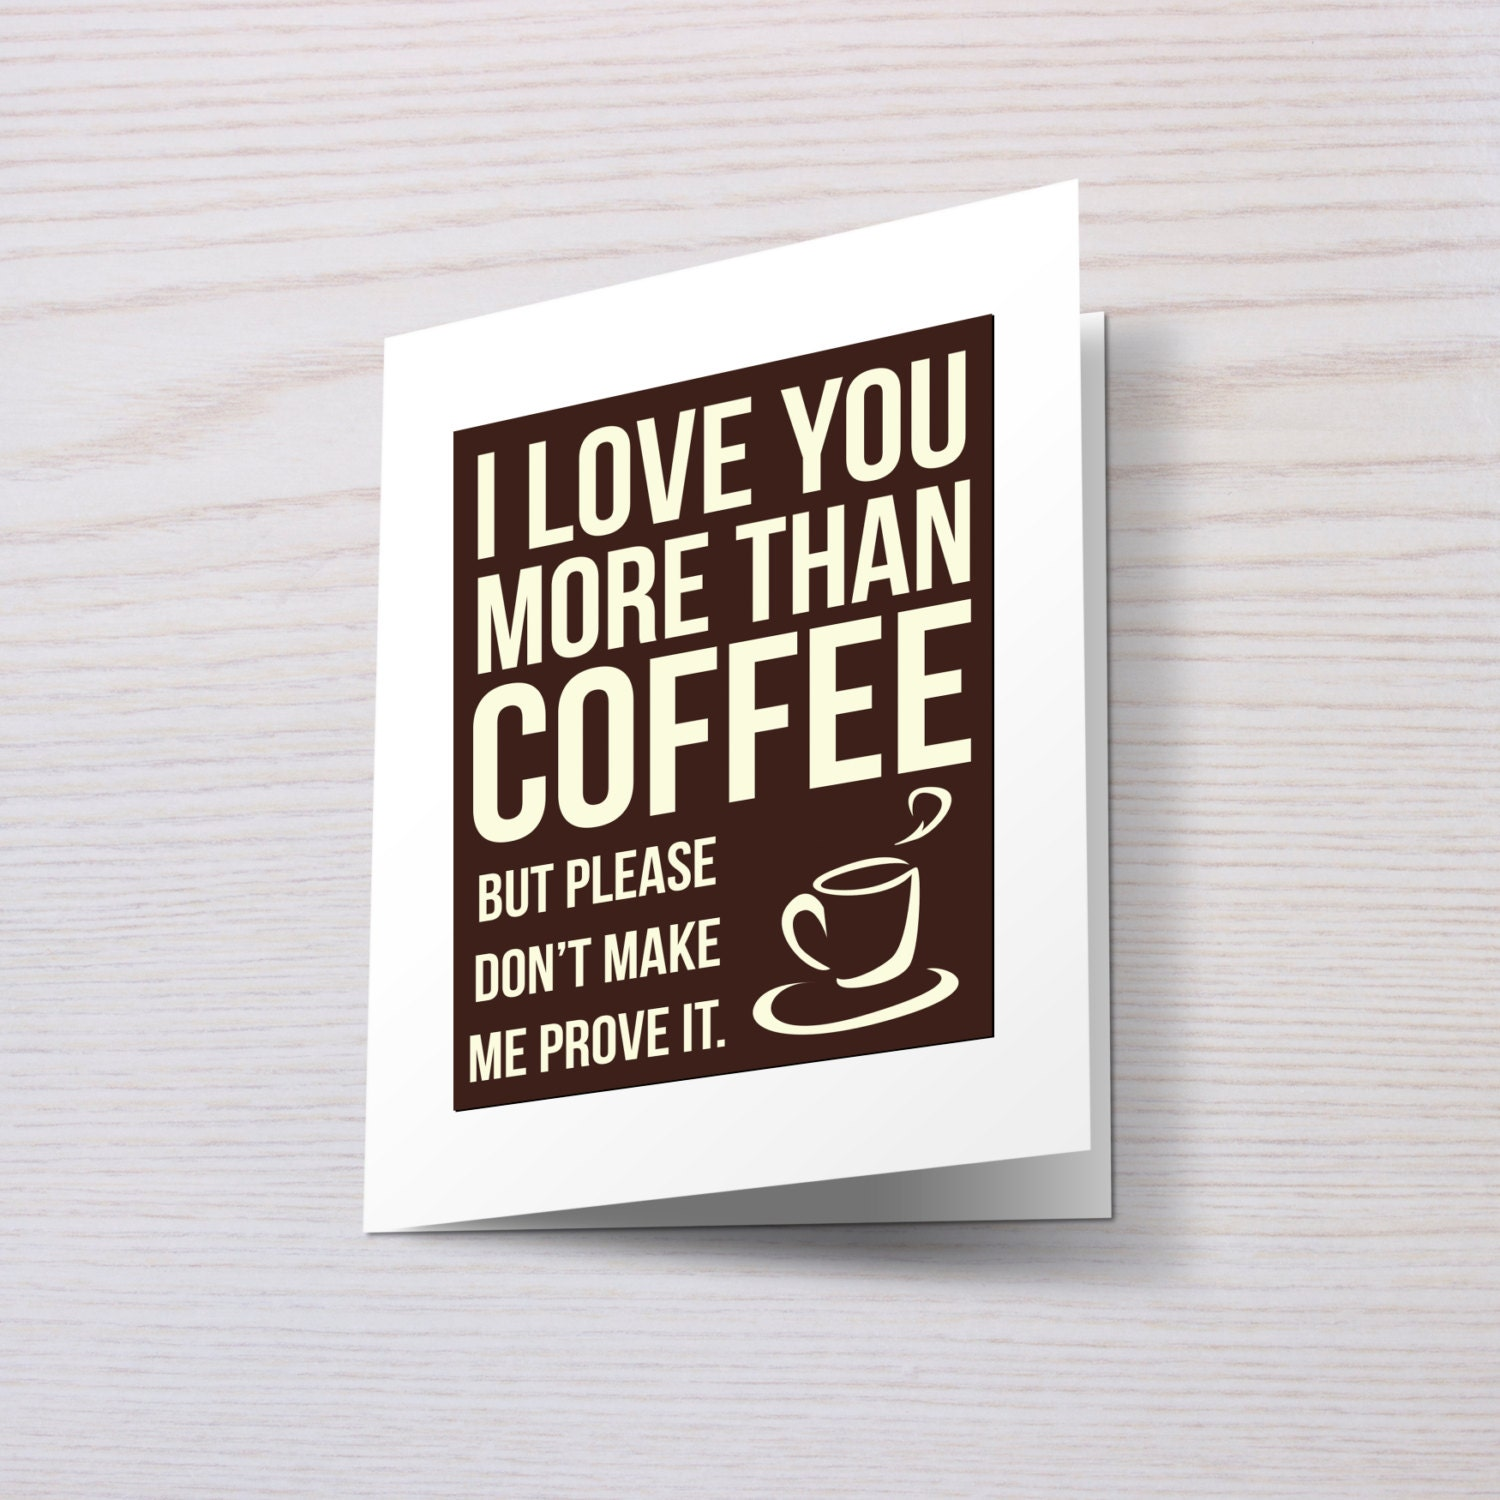 I Love You More Than Coffee Magnet Card by TheGraphicMagnet